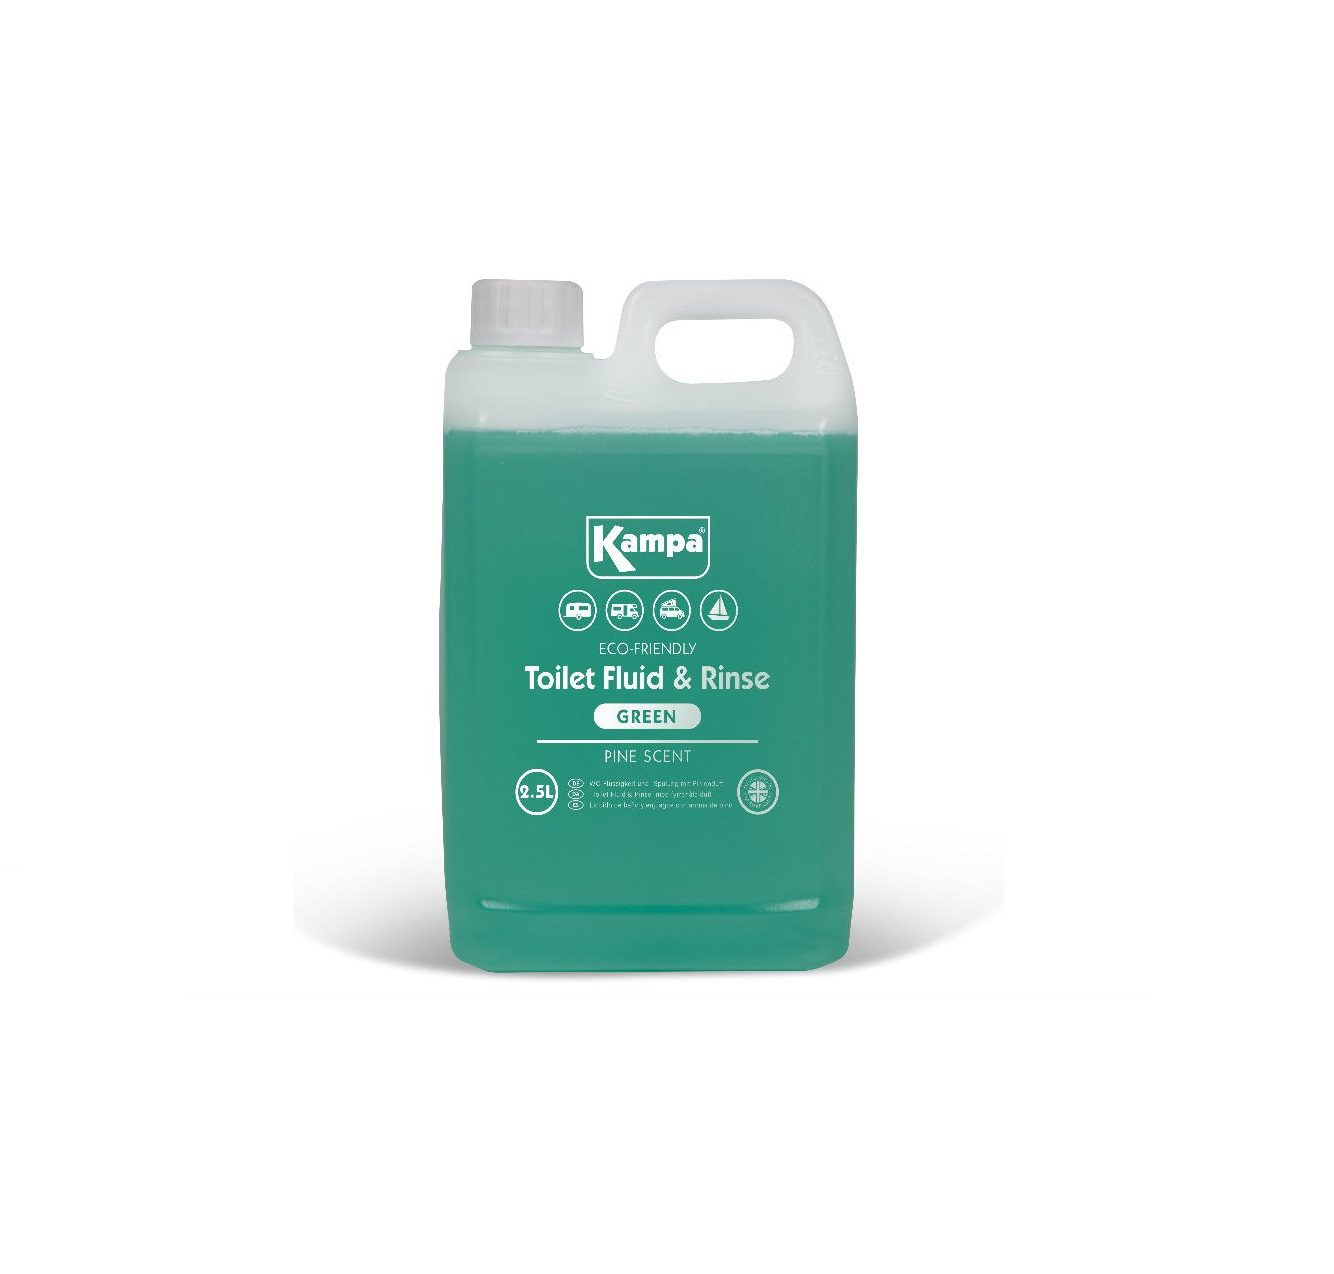 kampa toilet fluid and rinse 2.5